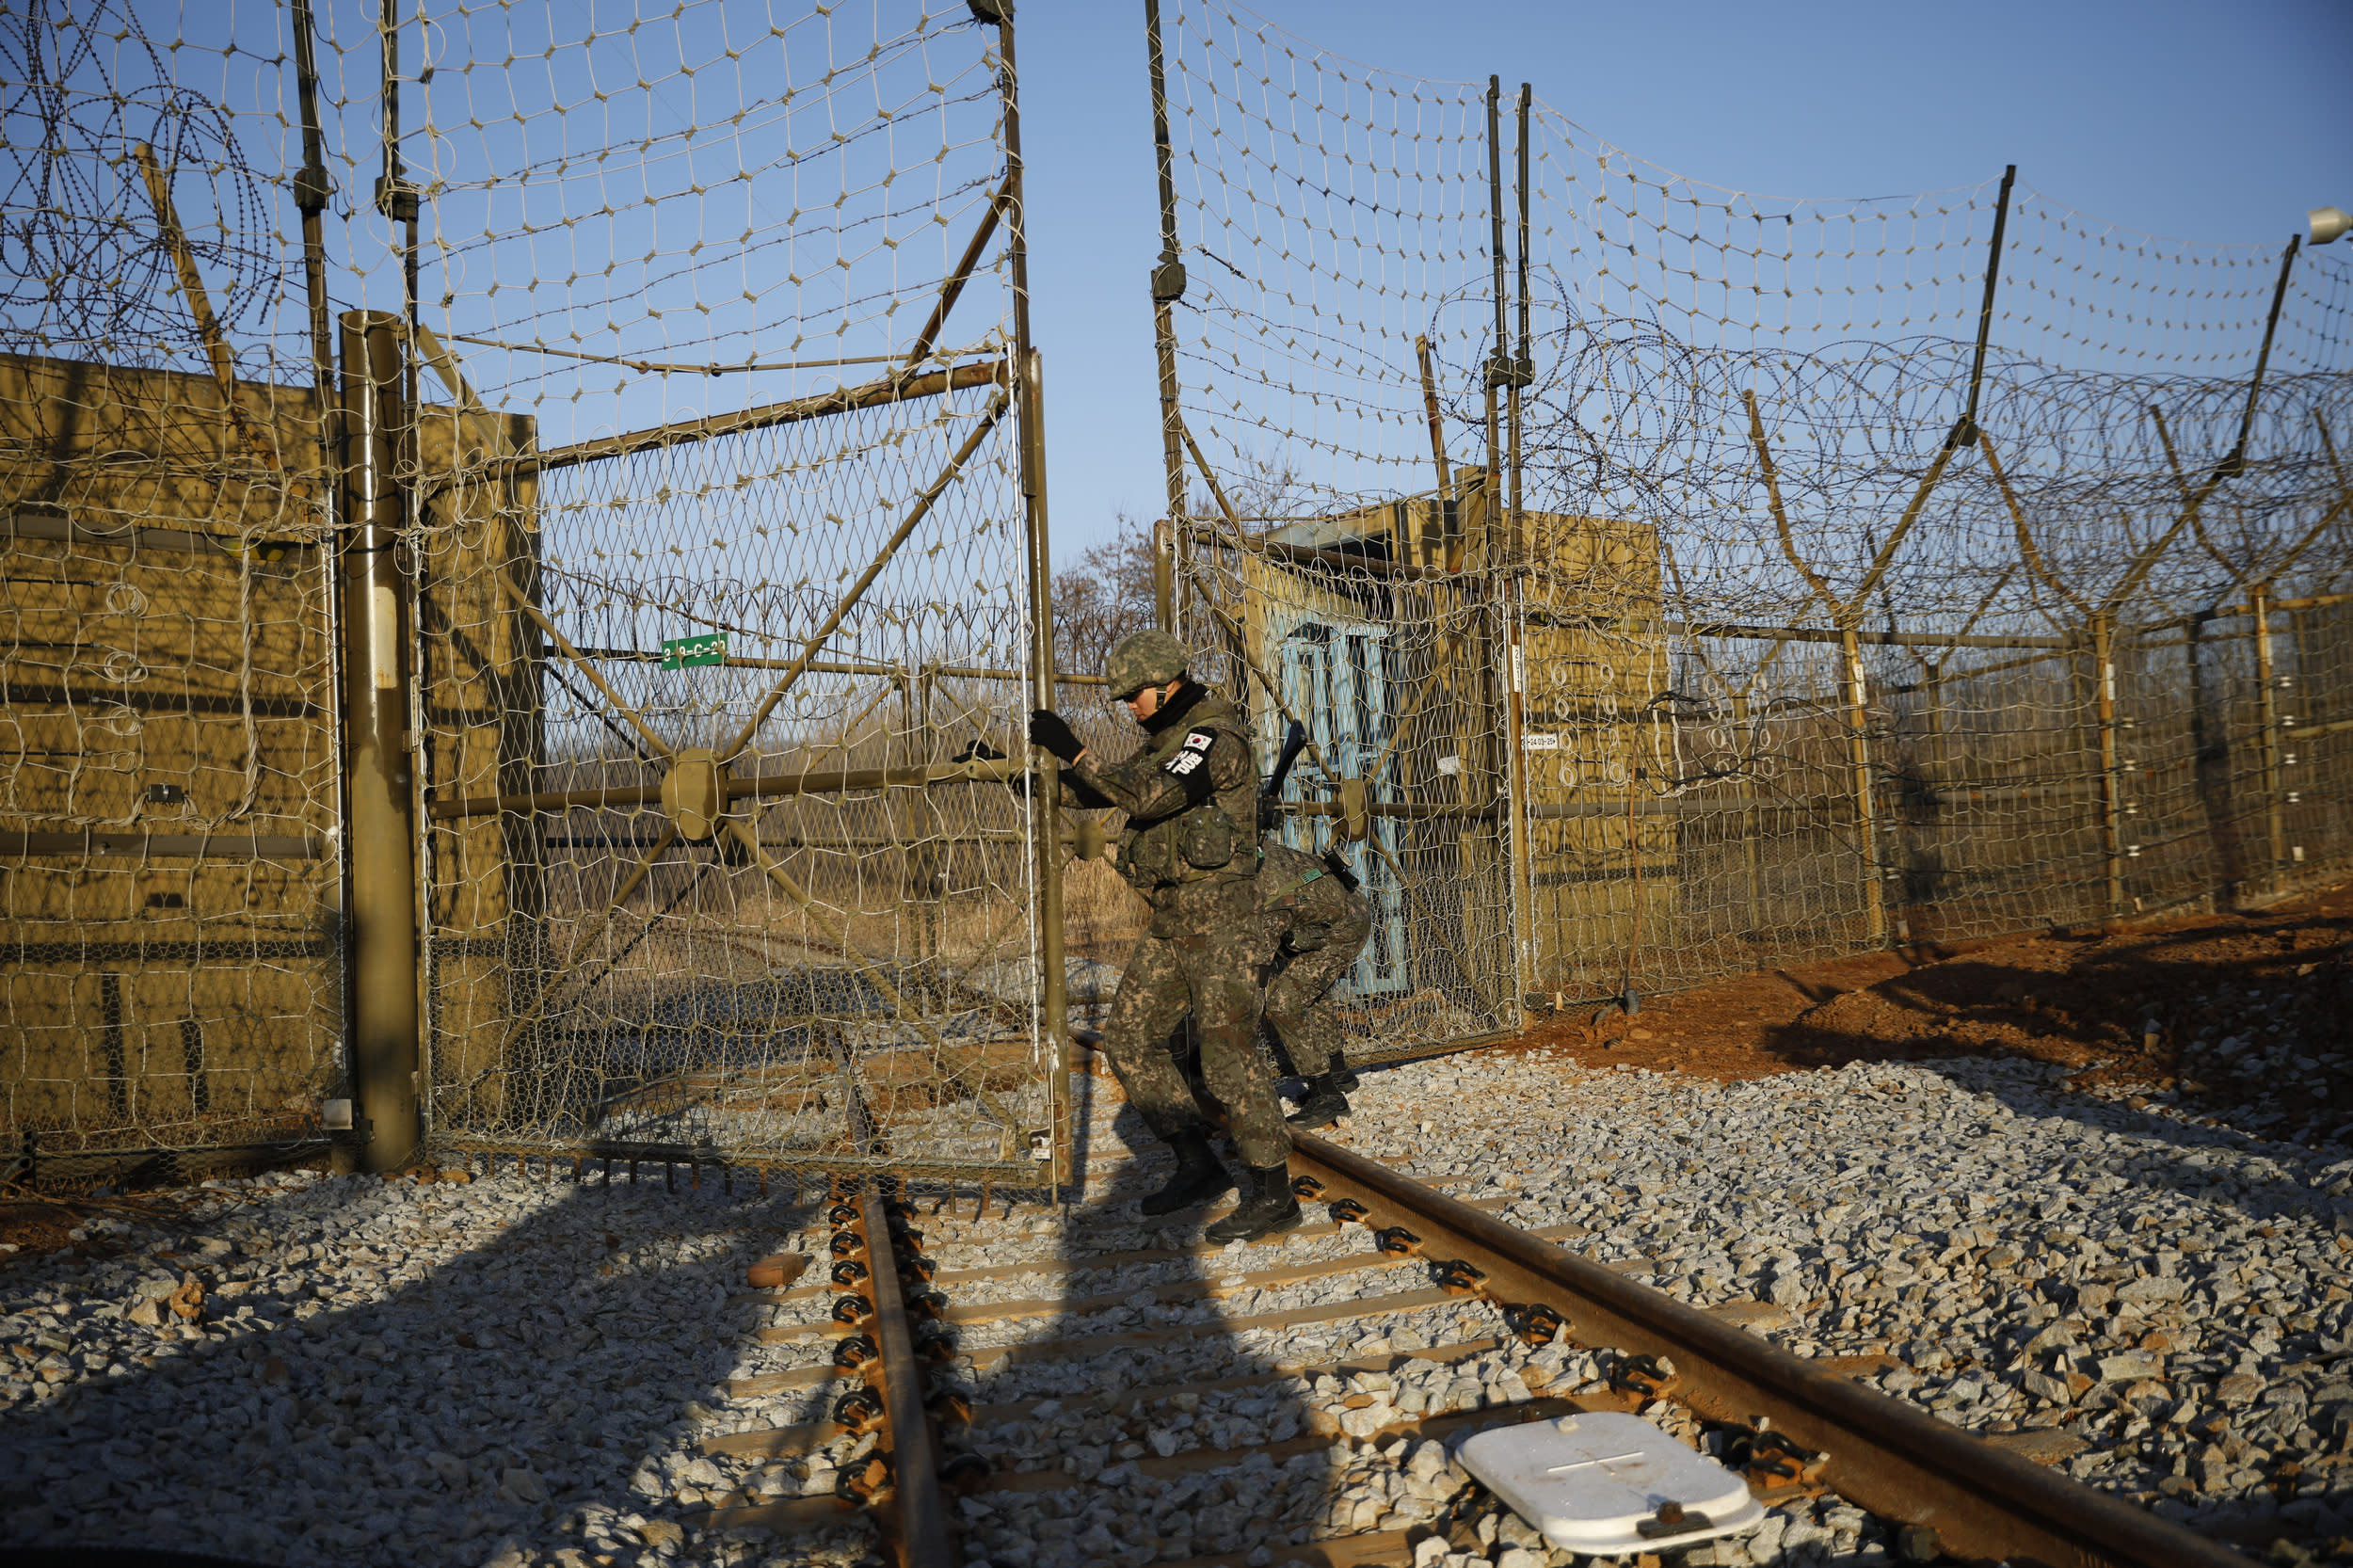 PAJU, SOUTH KOREA - NOVEMBER 30:  South Korean soldiers stand guard next to the rails which leads to North Korea, inside the demilitarized zone separating the two Koreas on November 30, 2018 in Paju, South Korea.  (Photo by Kim Hong-Ji-Pool/Getty Images)